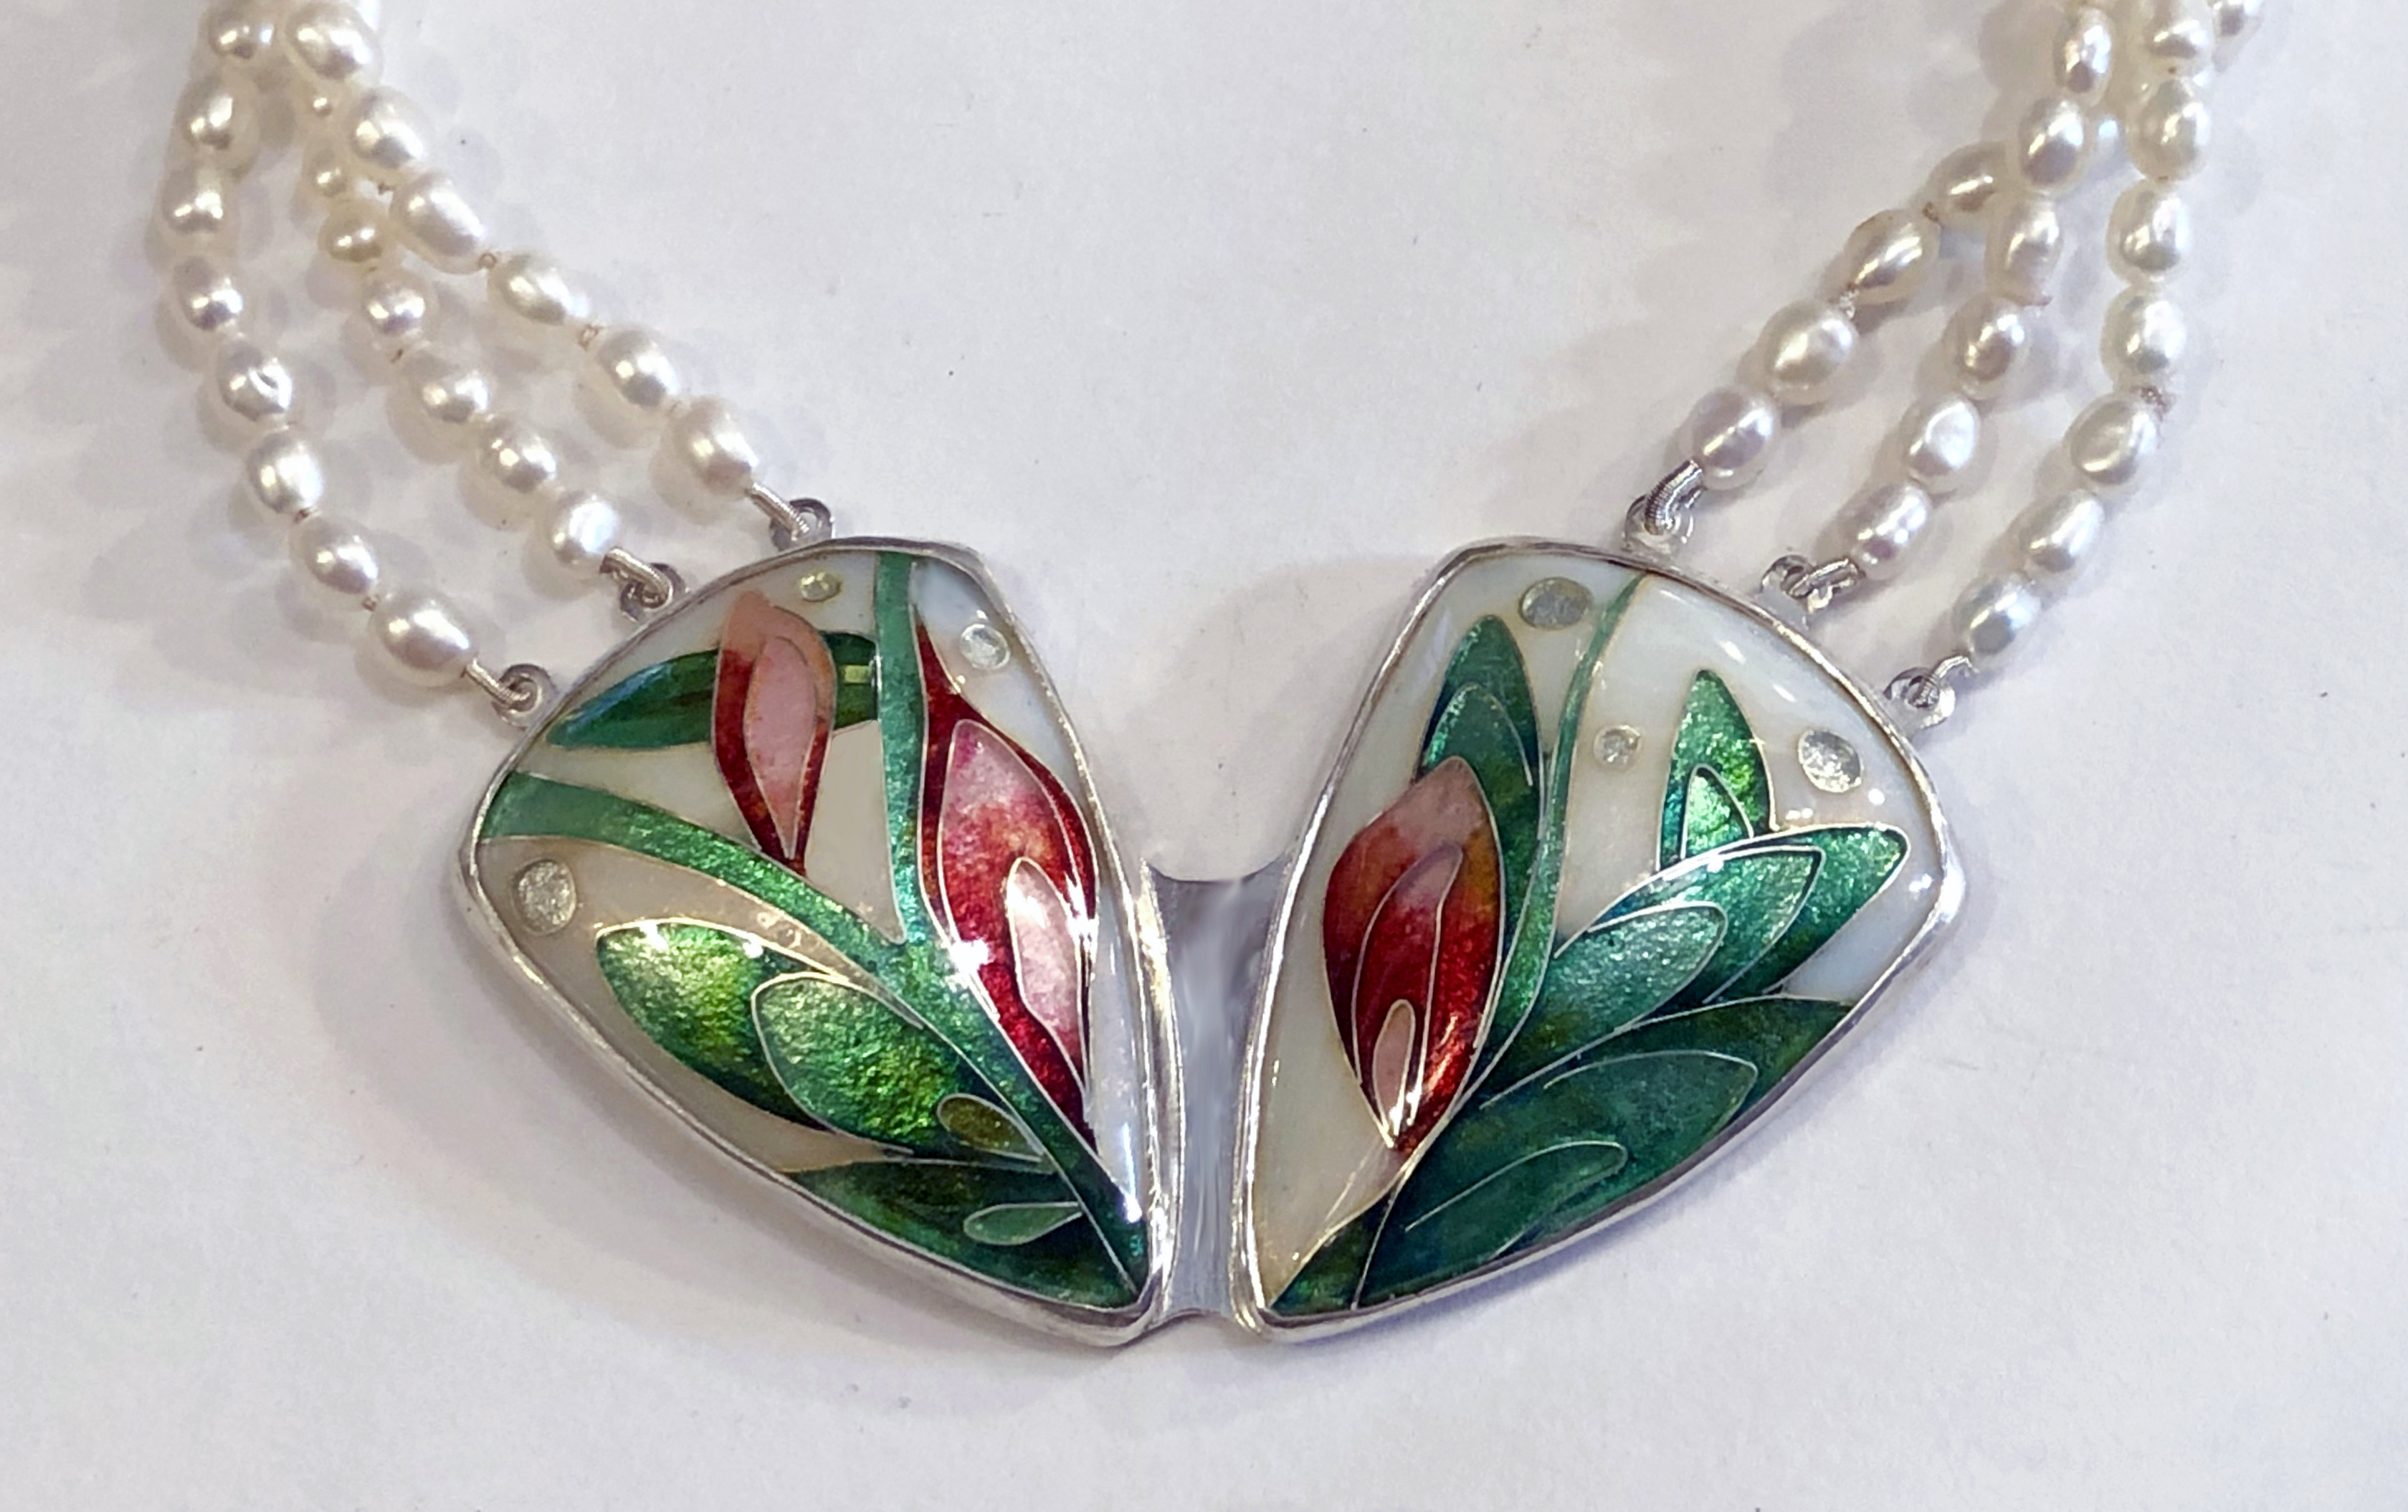 Cloisonné enamel flowers necklace with pearl necklace